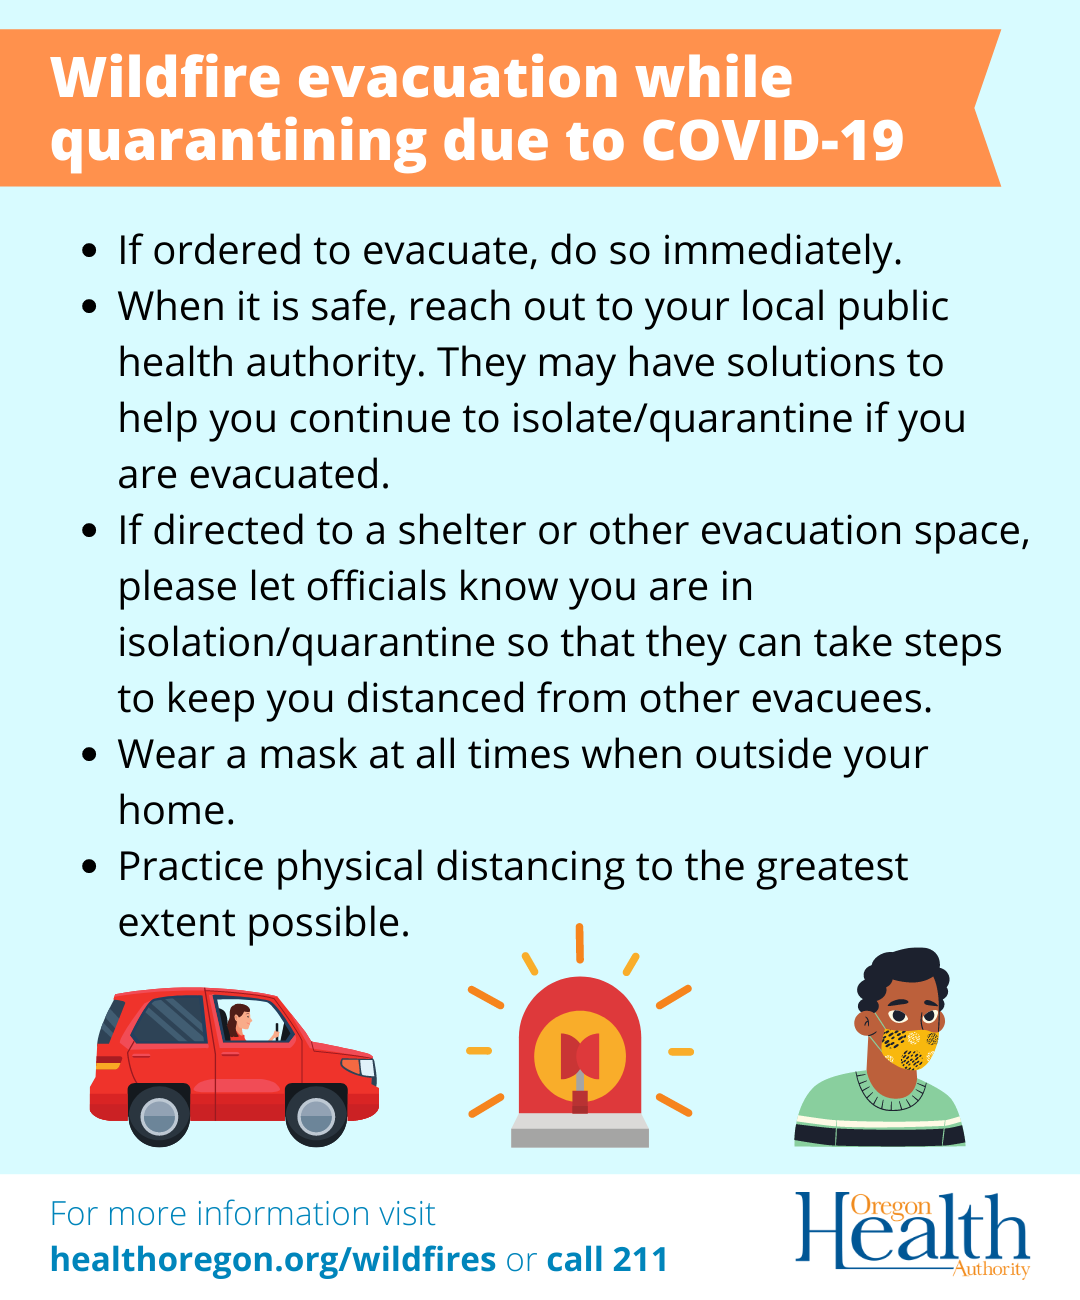 Wildfire evacuation while quarantining due to COVID-19